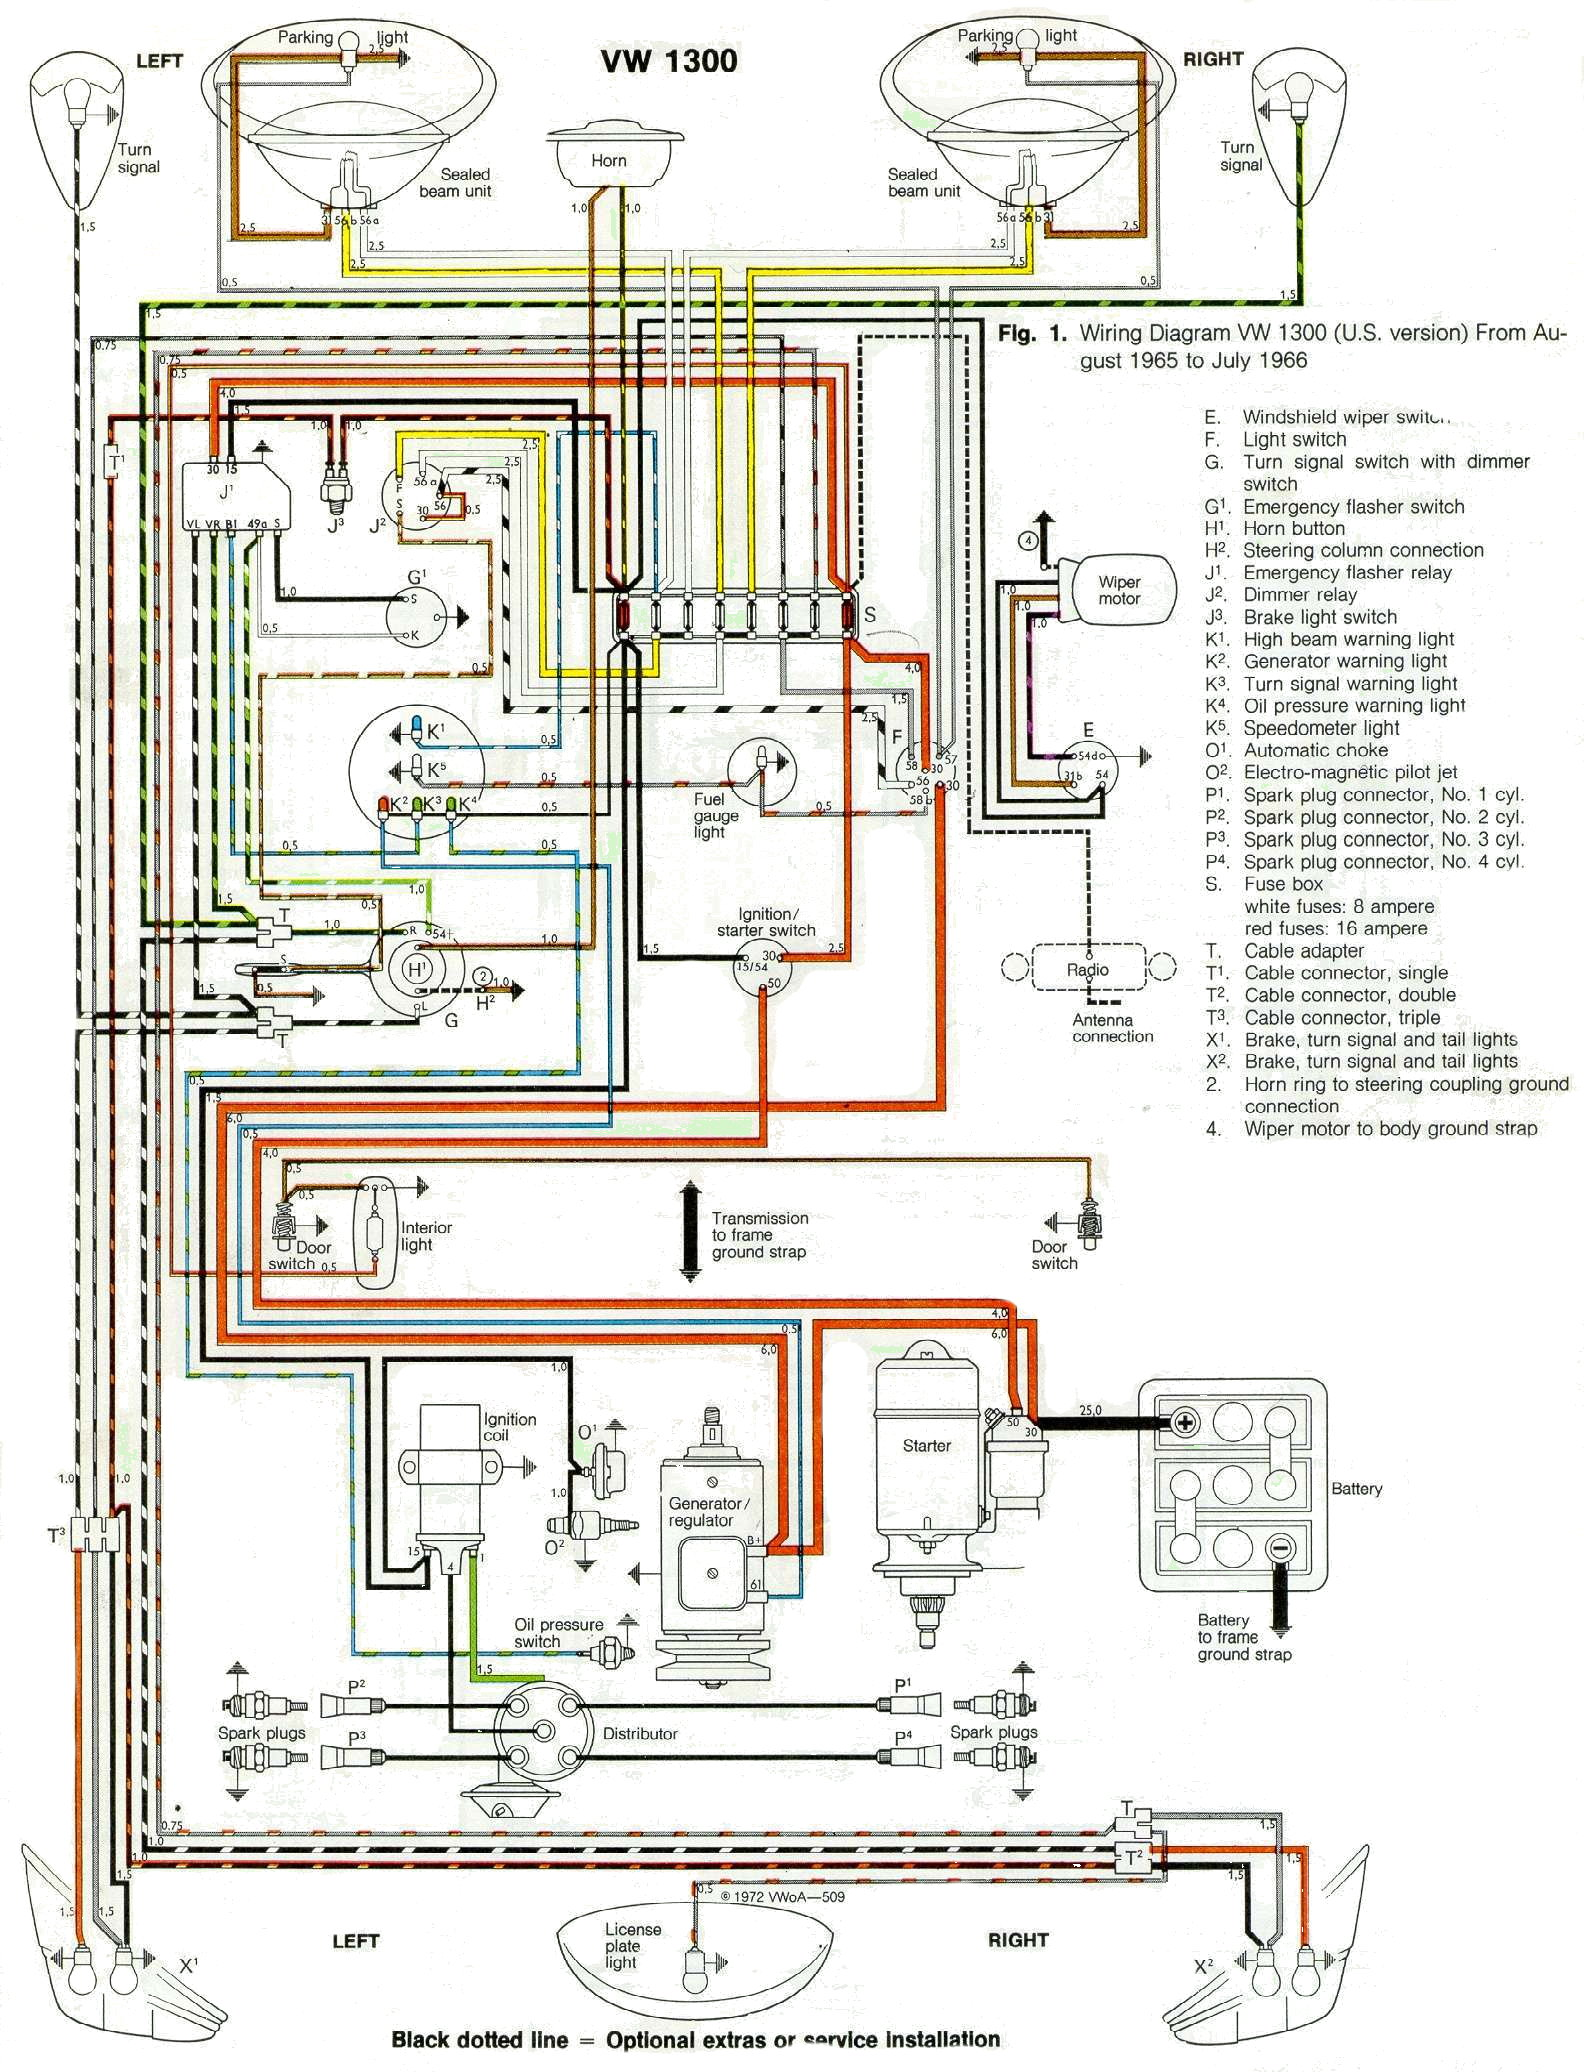 Vw Headlight Switch Wiring Diagram : Headlight wiring diagram vw get free image about